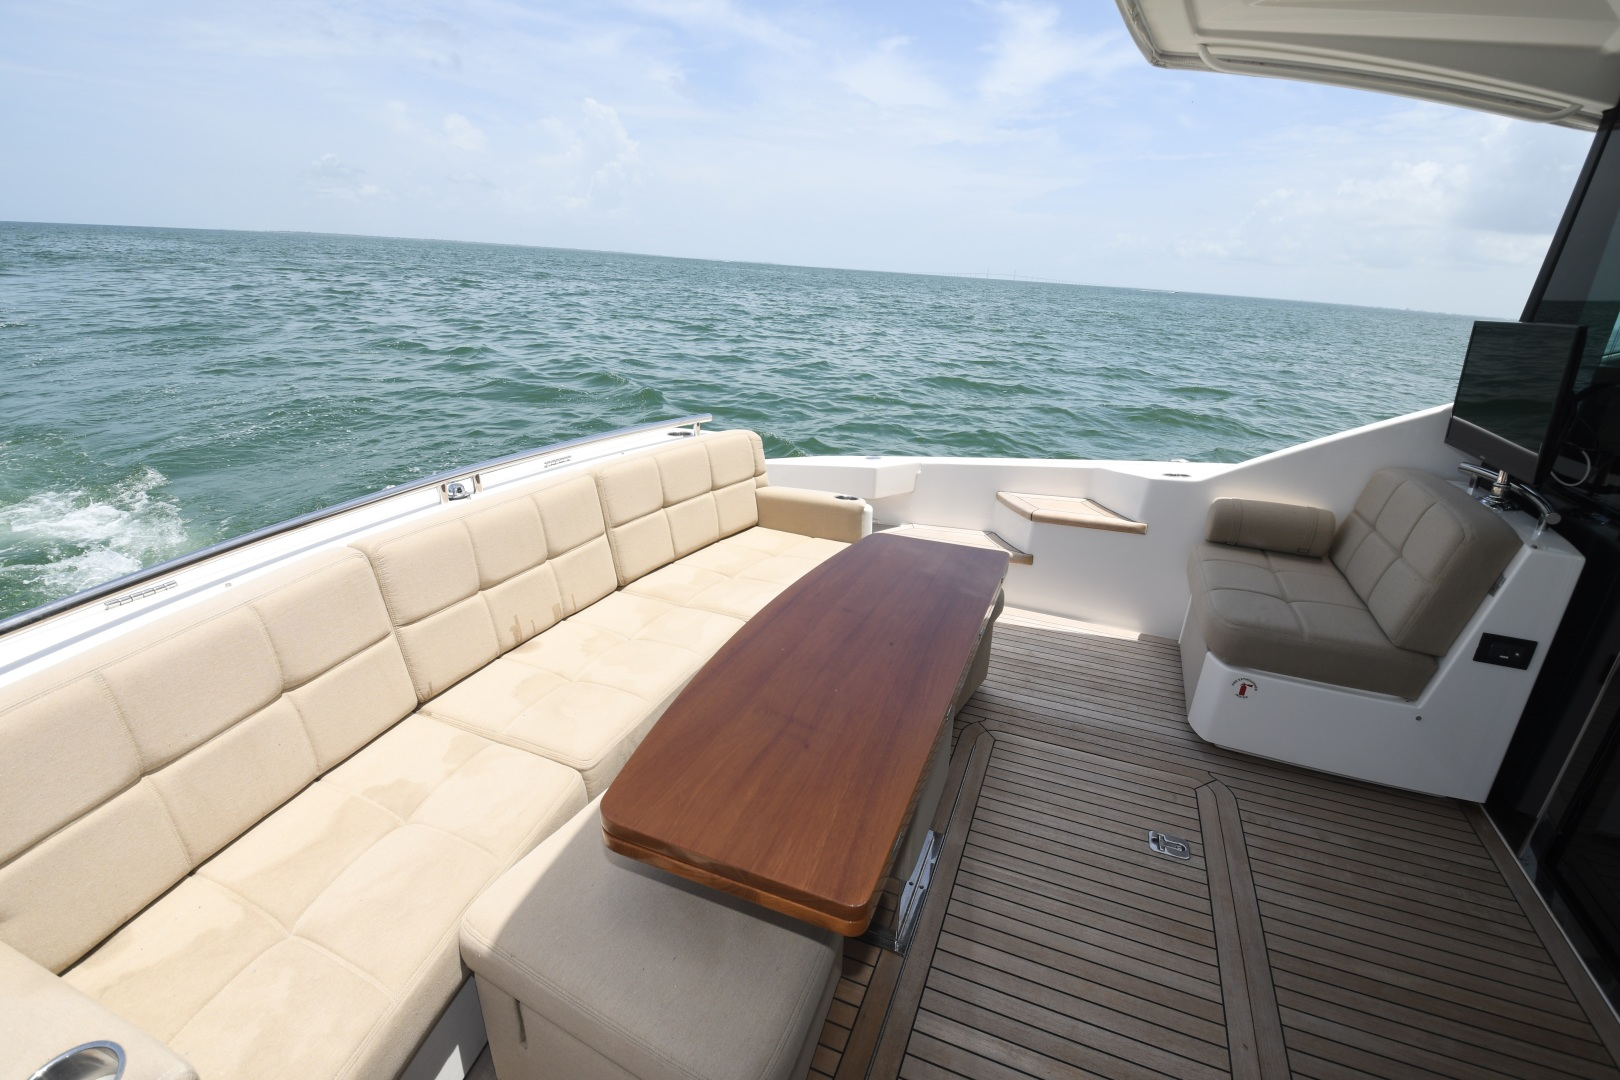 Tiara-50 Coupe 2014-Hoosier Daddy Anna Maria-Florida-United States-2014 Tiara 50 Coupe  Hoosier Daddy  Cockpit-1450871 | Thumbnail